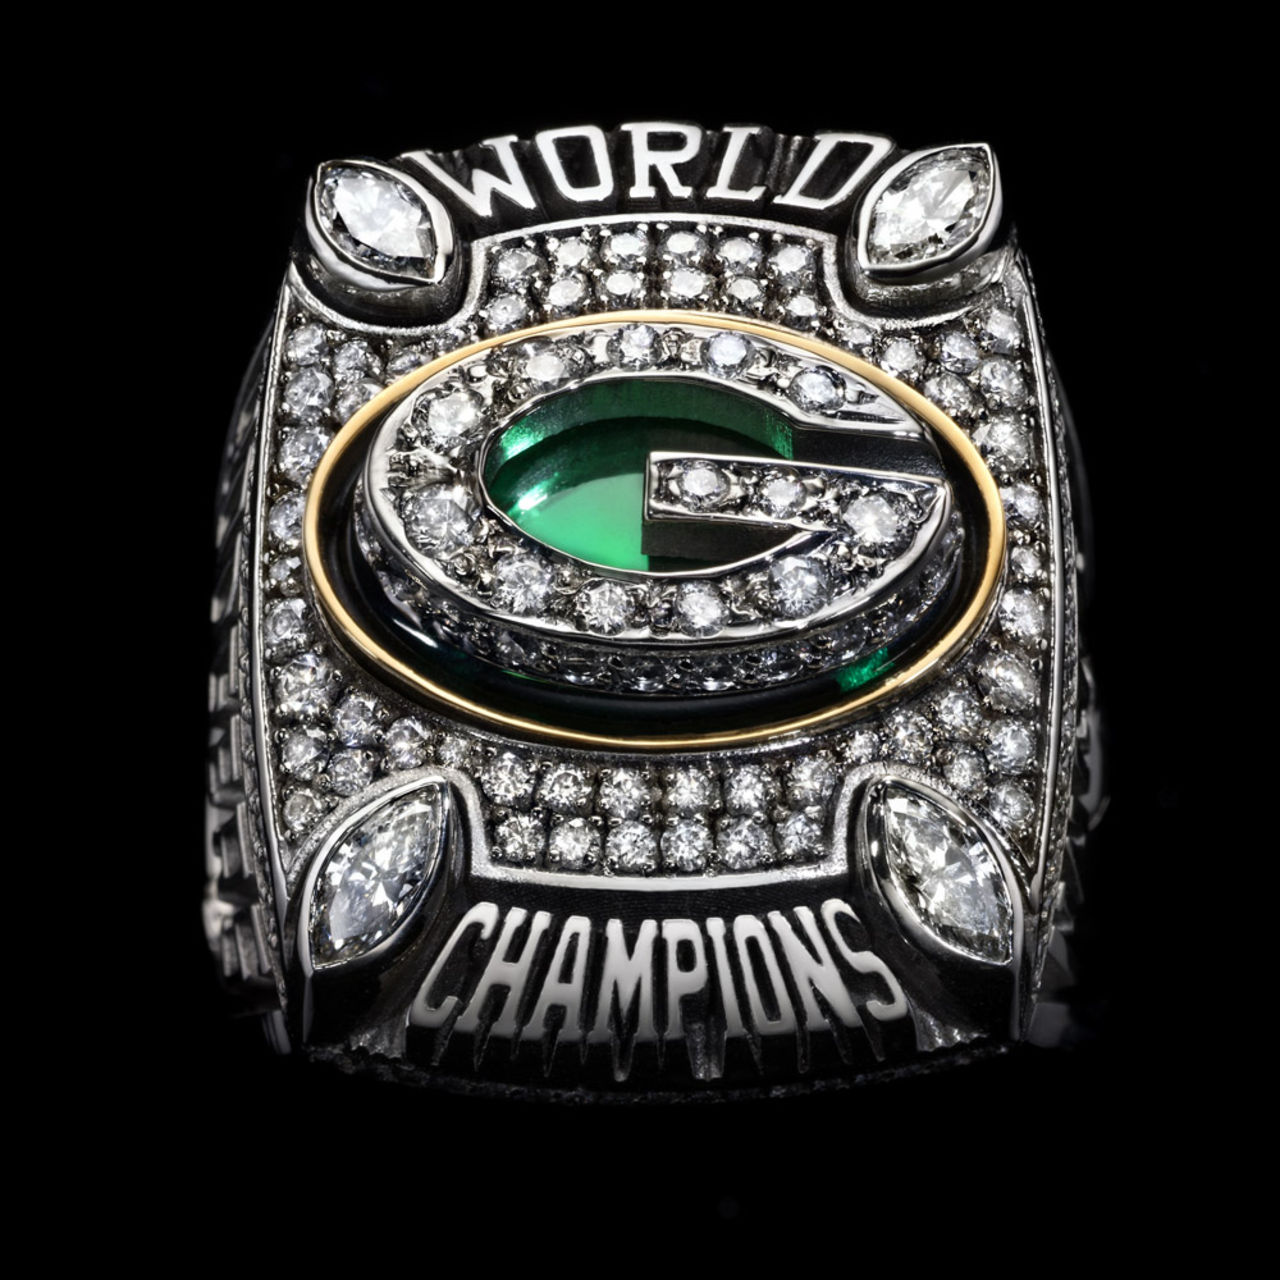 Green Bay Packers 2011 champions ring